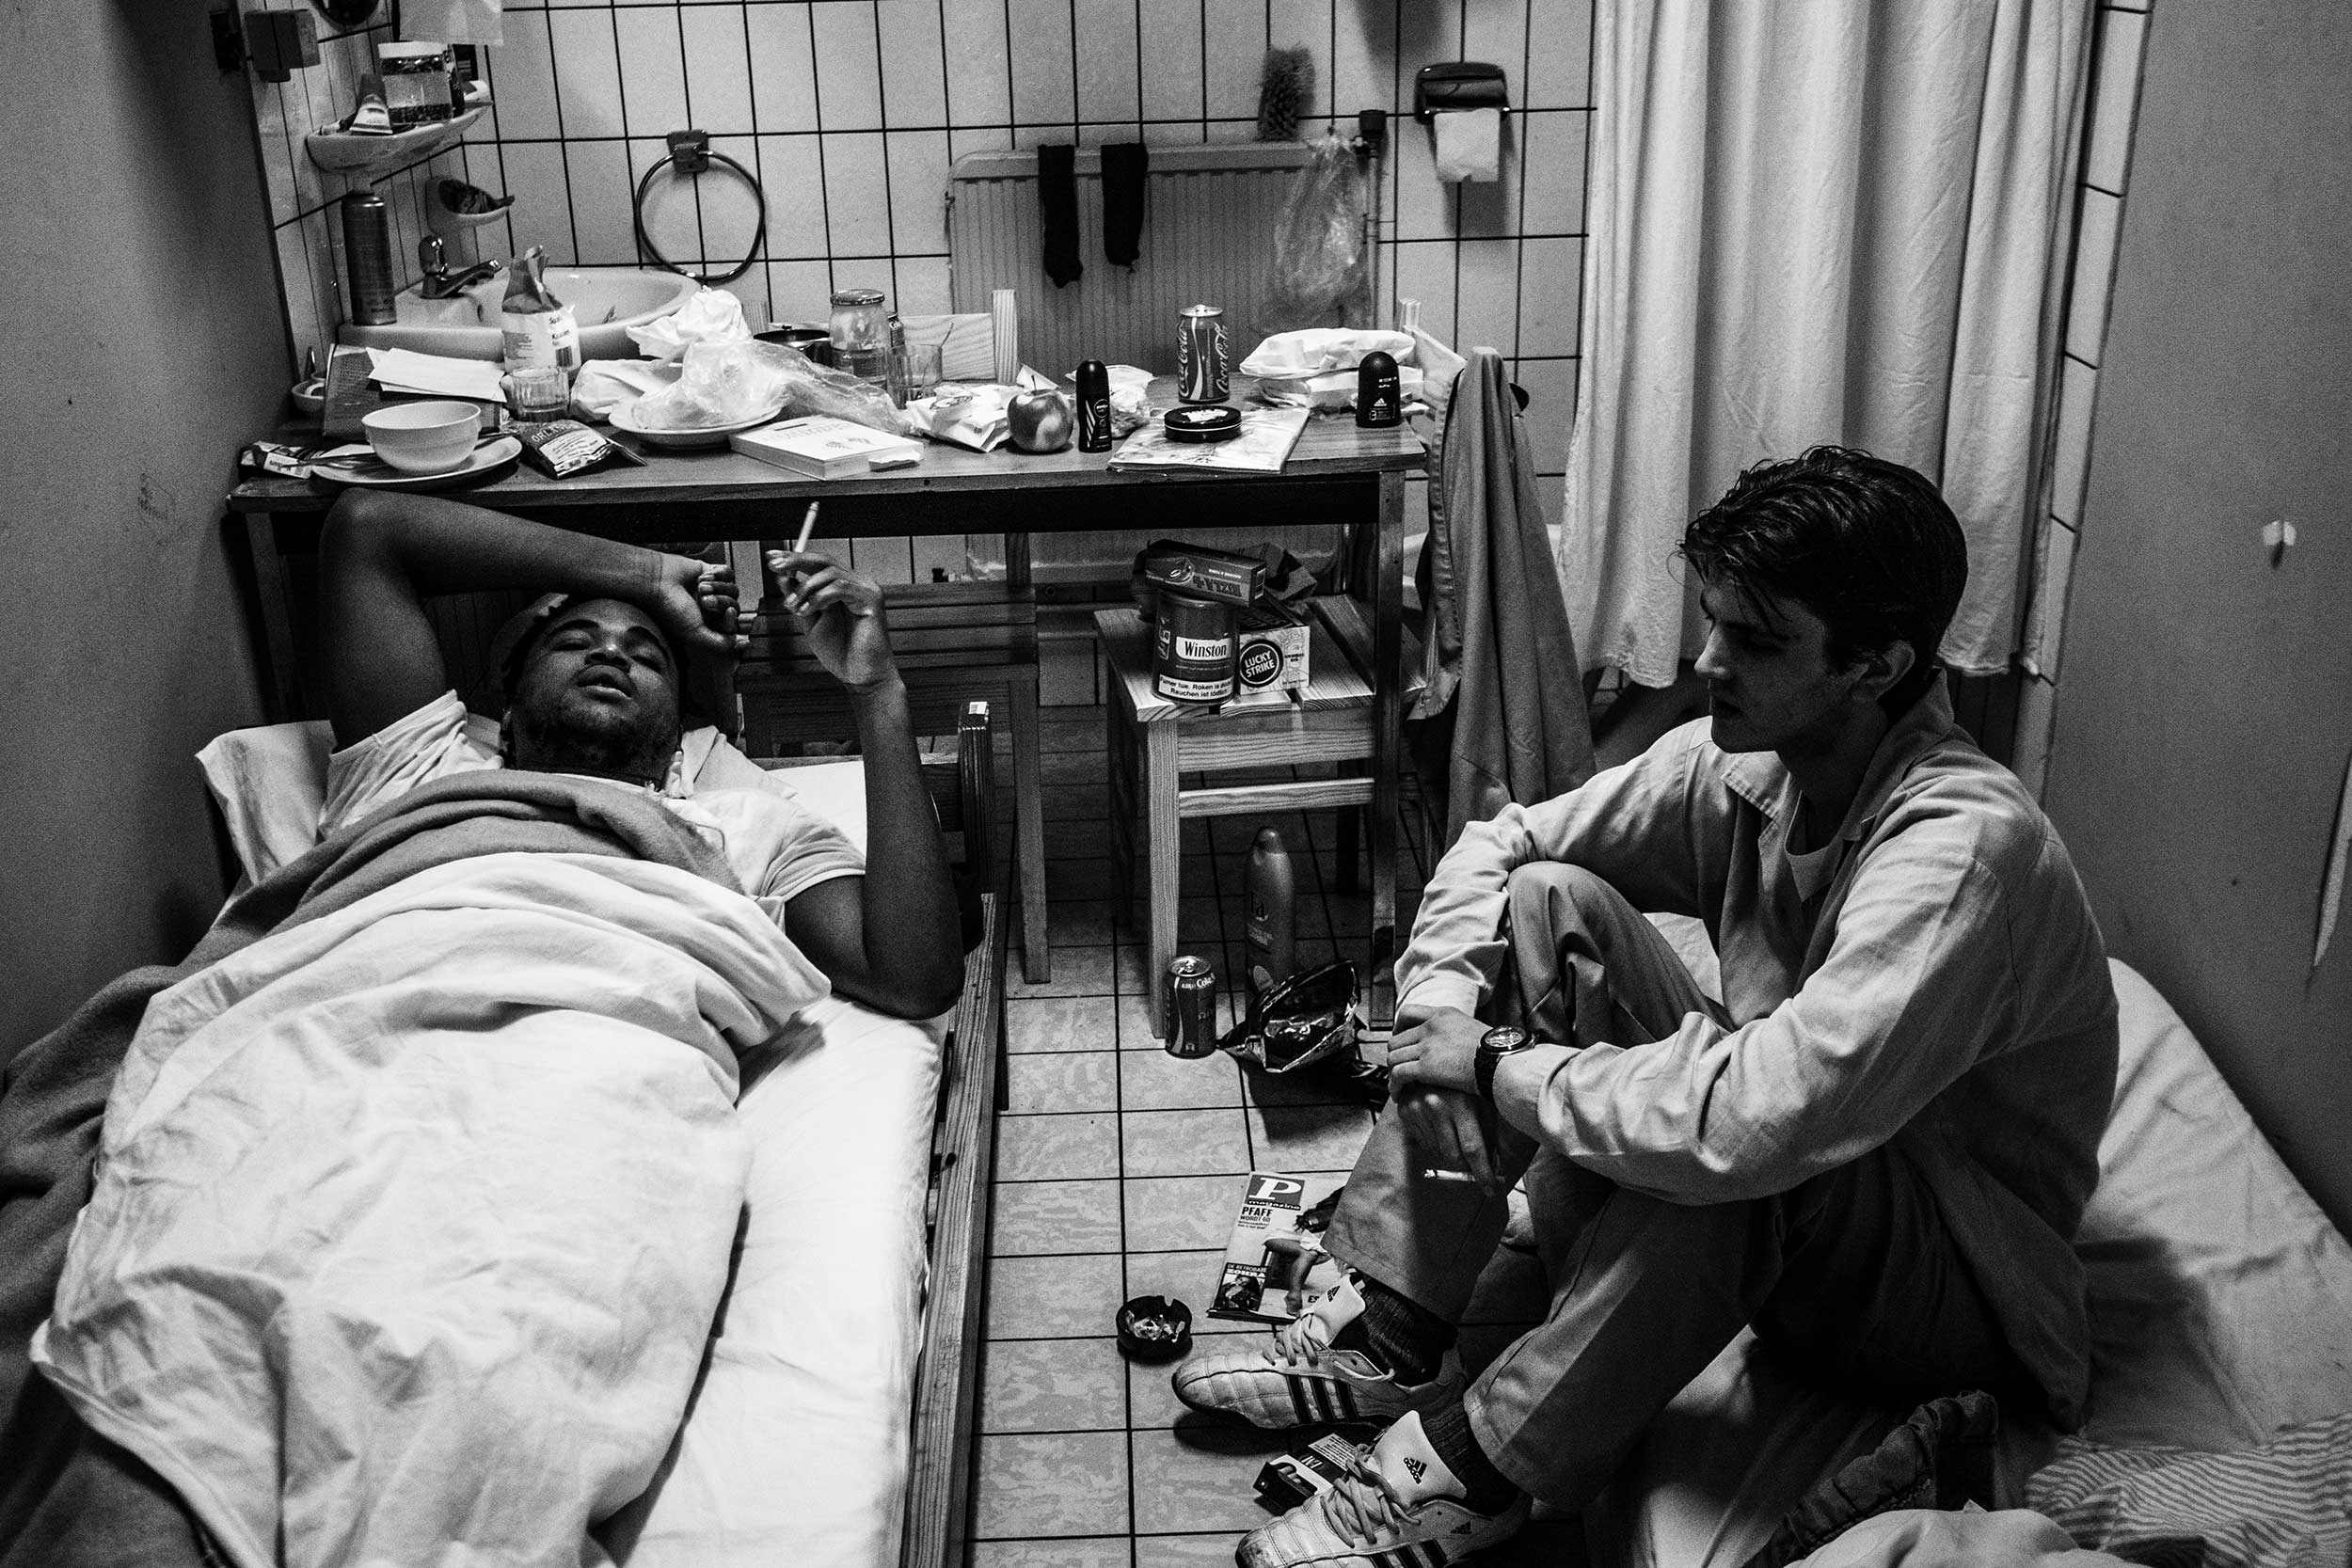 Two inmates are talking and smoking cigarettes in their cell. One of them sleeps on the floor due to overcrowding at the prison. A curtain hides the toilet. Ghent, Belgium. December 2013.